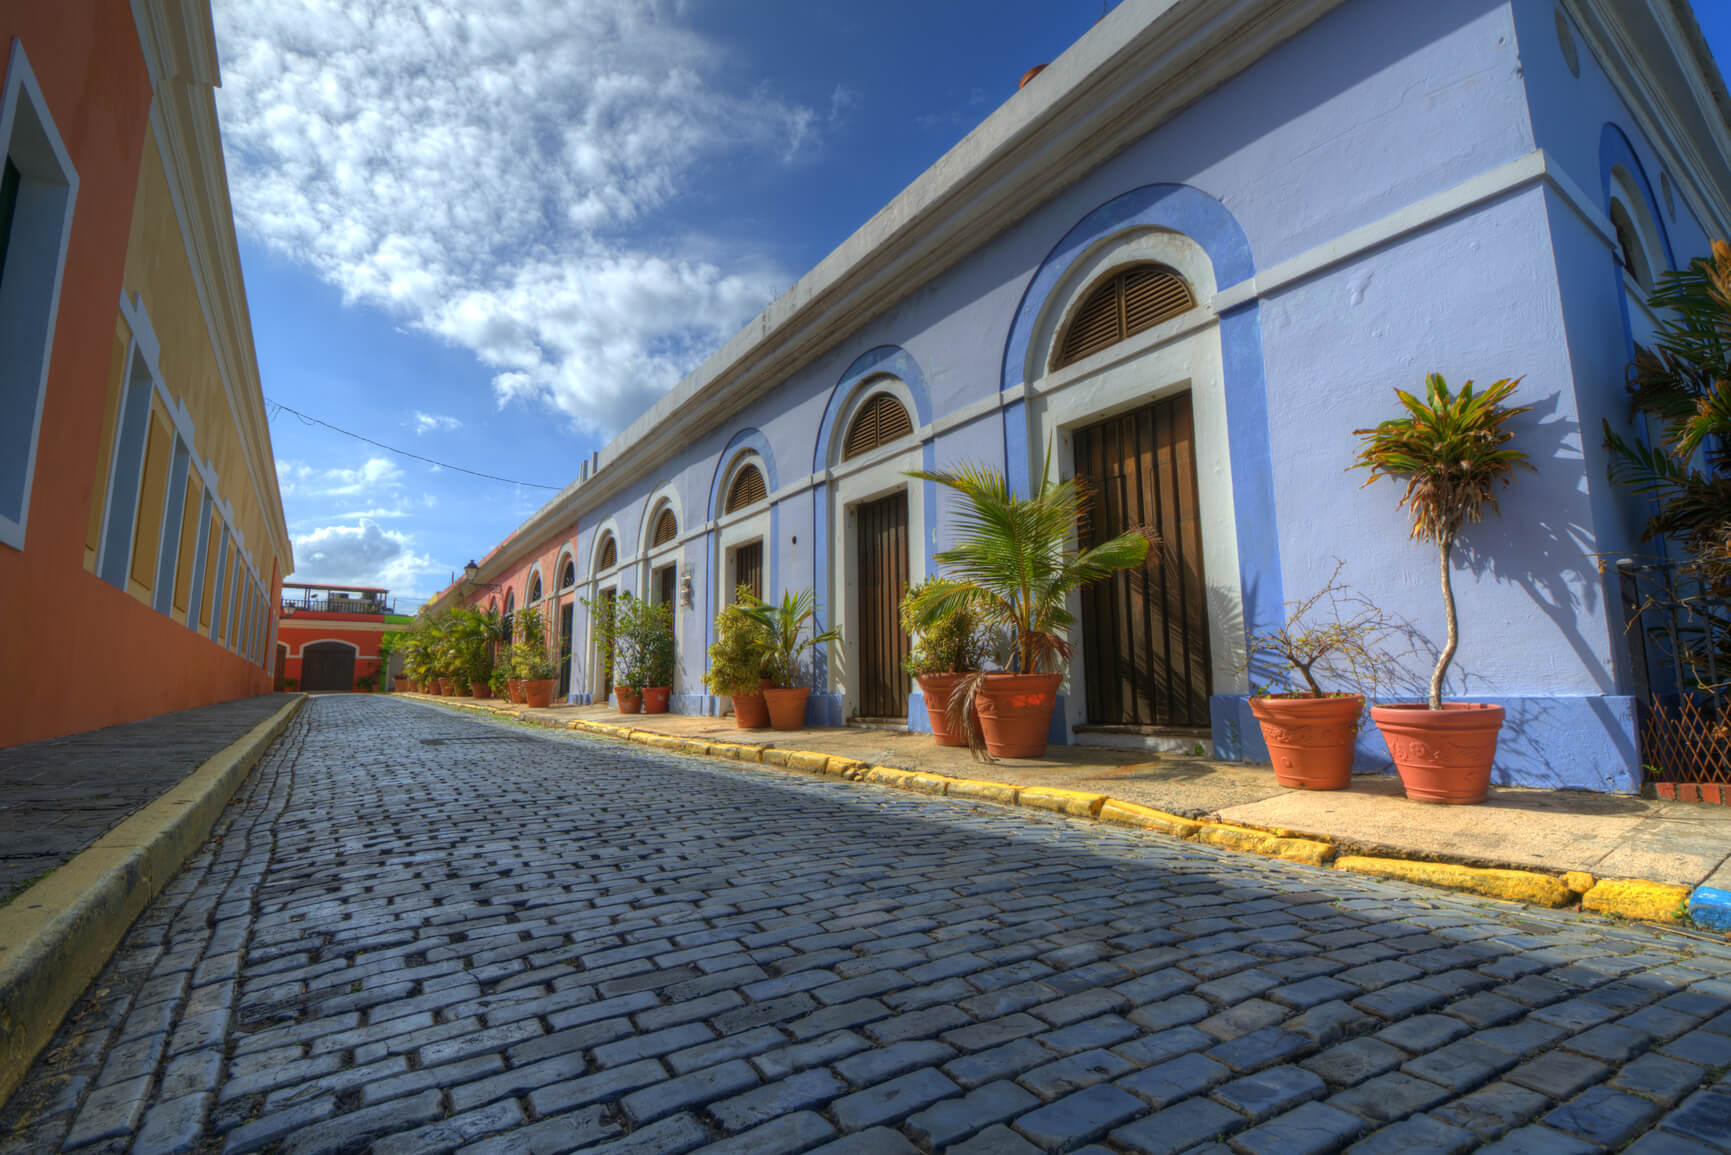 Los Angeles to San Juan, Puerto Rico for only $191 roundtrip (Oct-Feb dates)